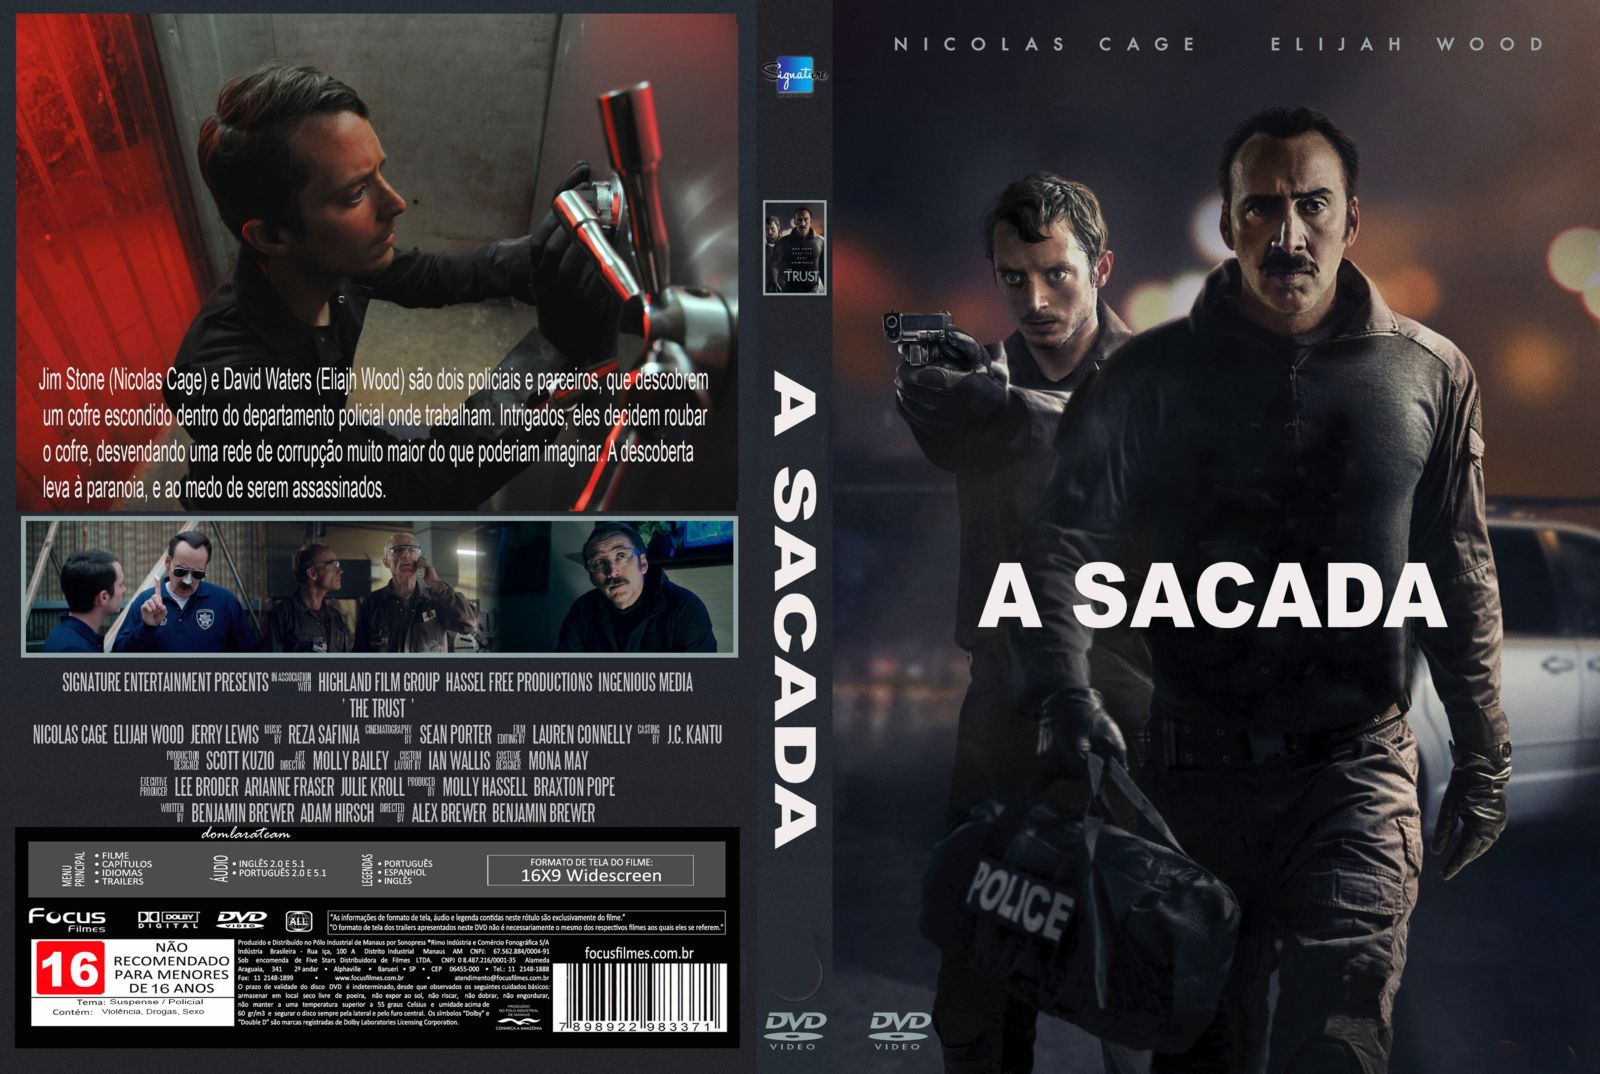 Download A Sacada DVD-R Download A Sacada DVD-R A 2BSacada